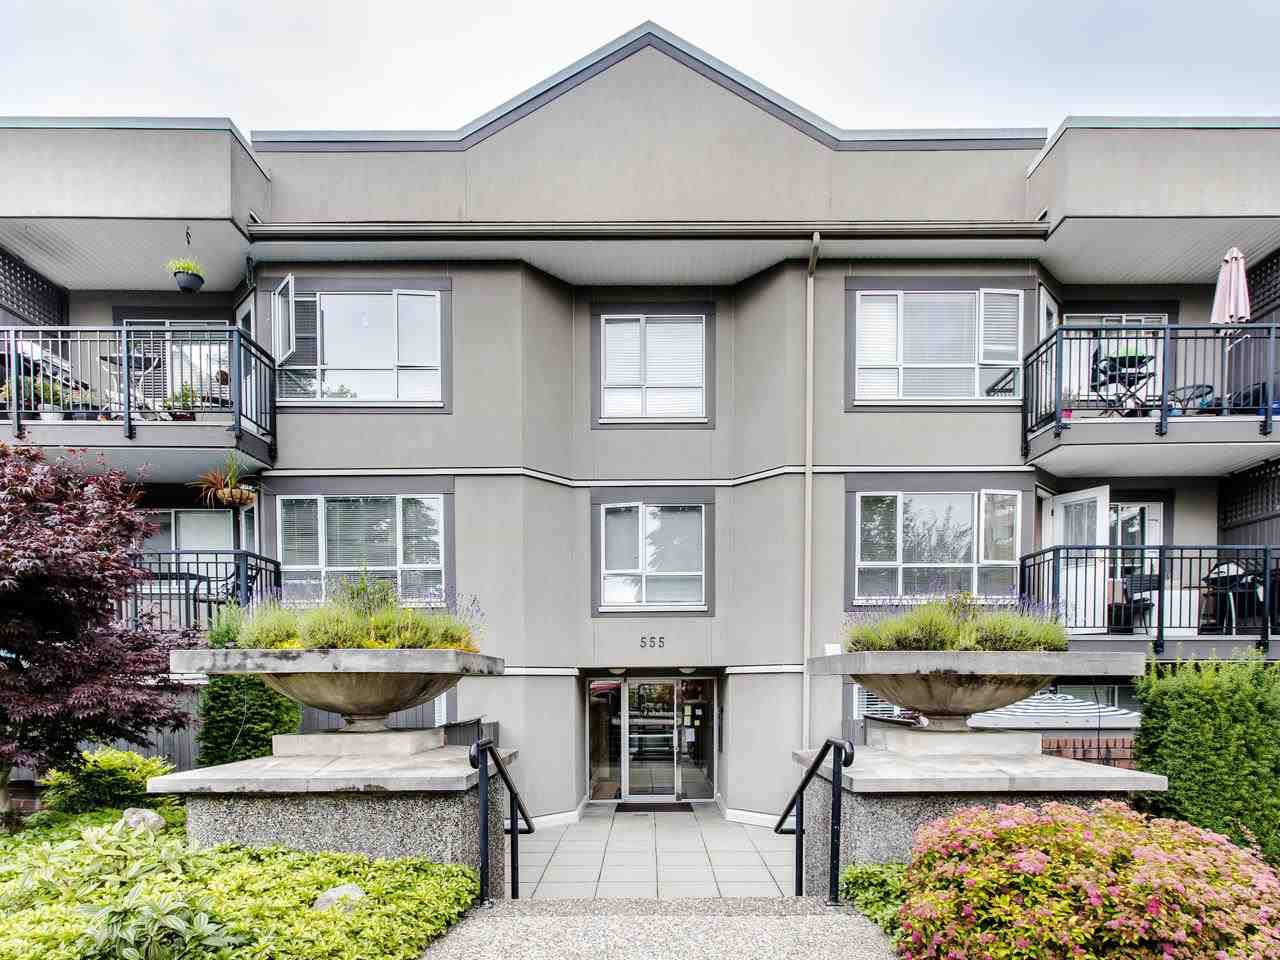 """Main Photo: 215 555 W 14TH Avenue in Vancouver: Fairview VW Condo for sale in """"Cambridge Place"""" (Vancouver West)  : MLS®# R2470013"""